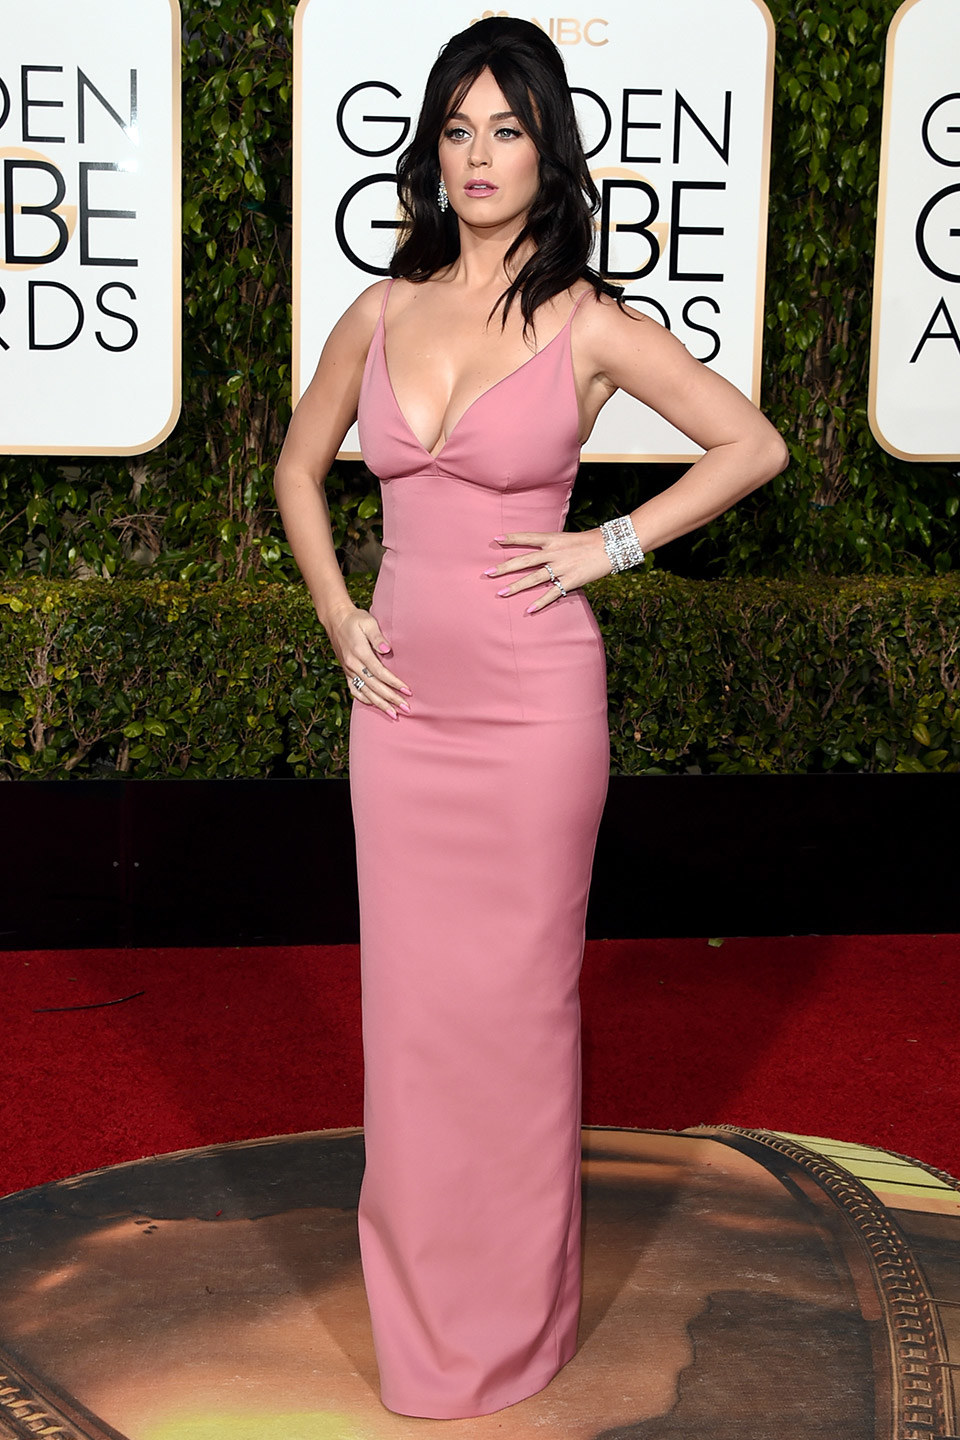 golden-globes-2016-katy-perry.jpg (343.36 Kb)